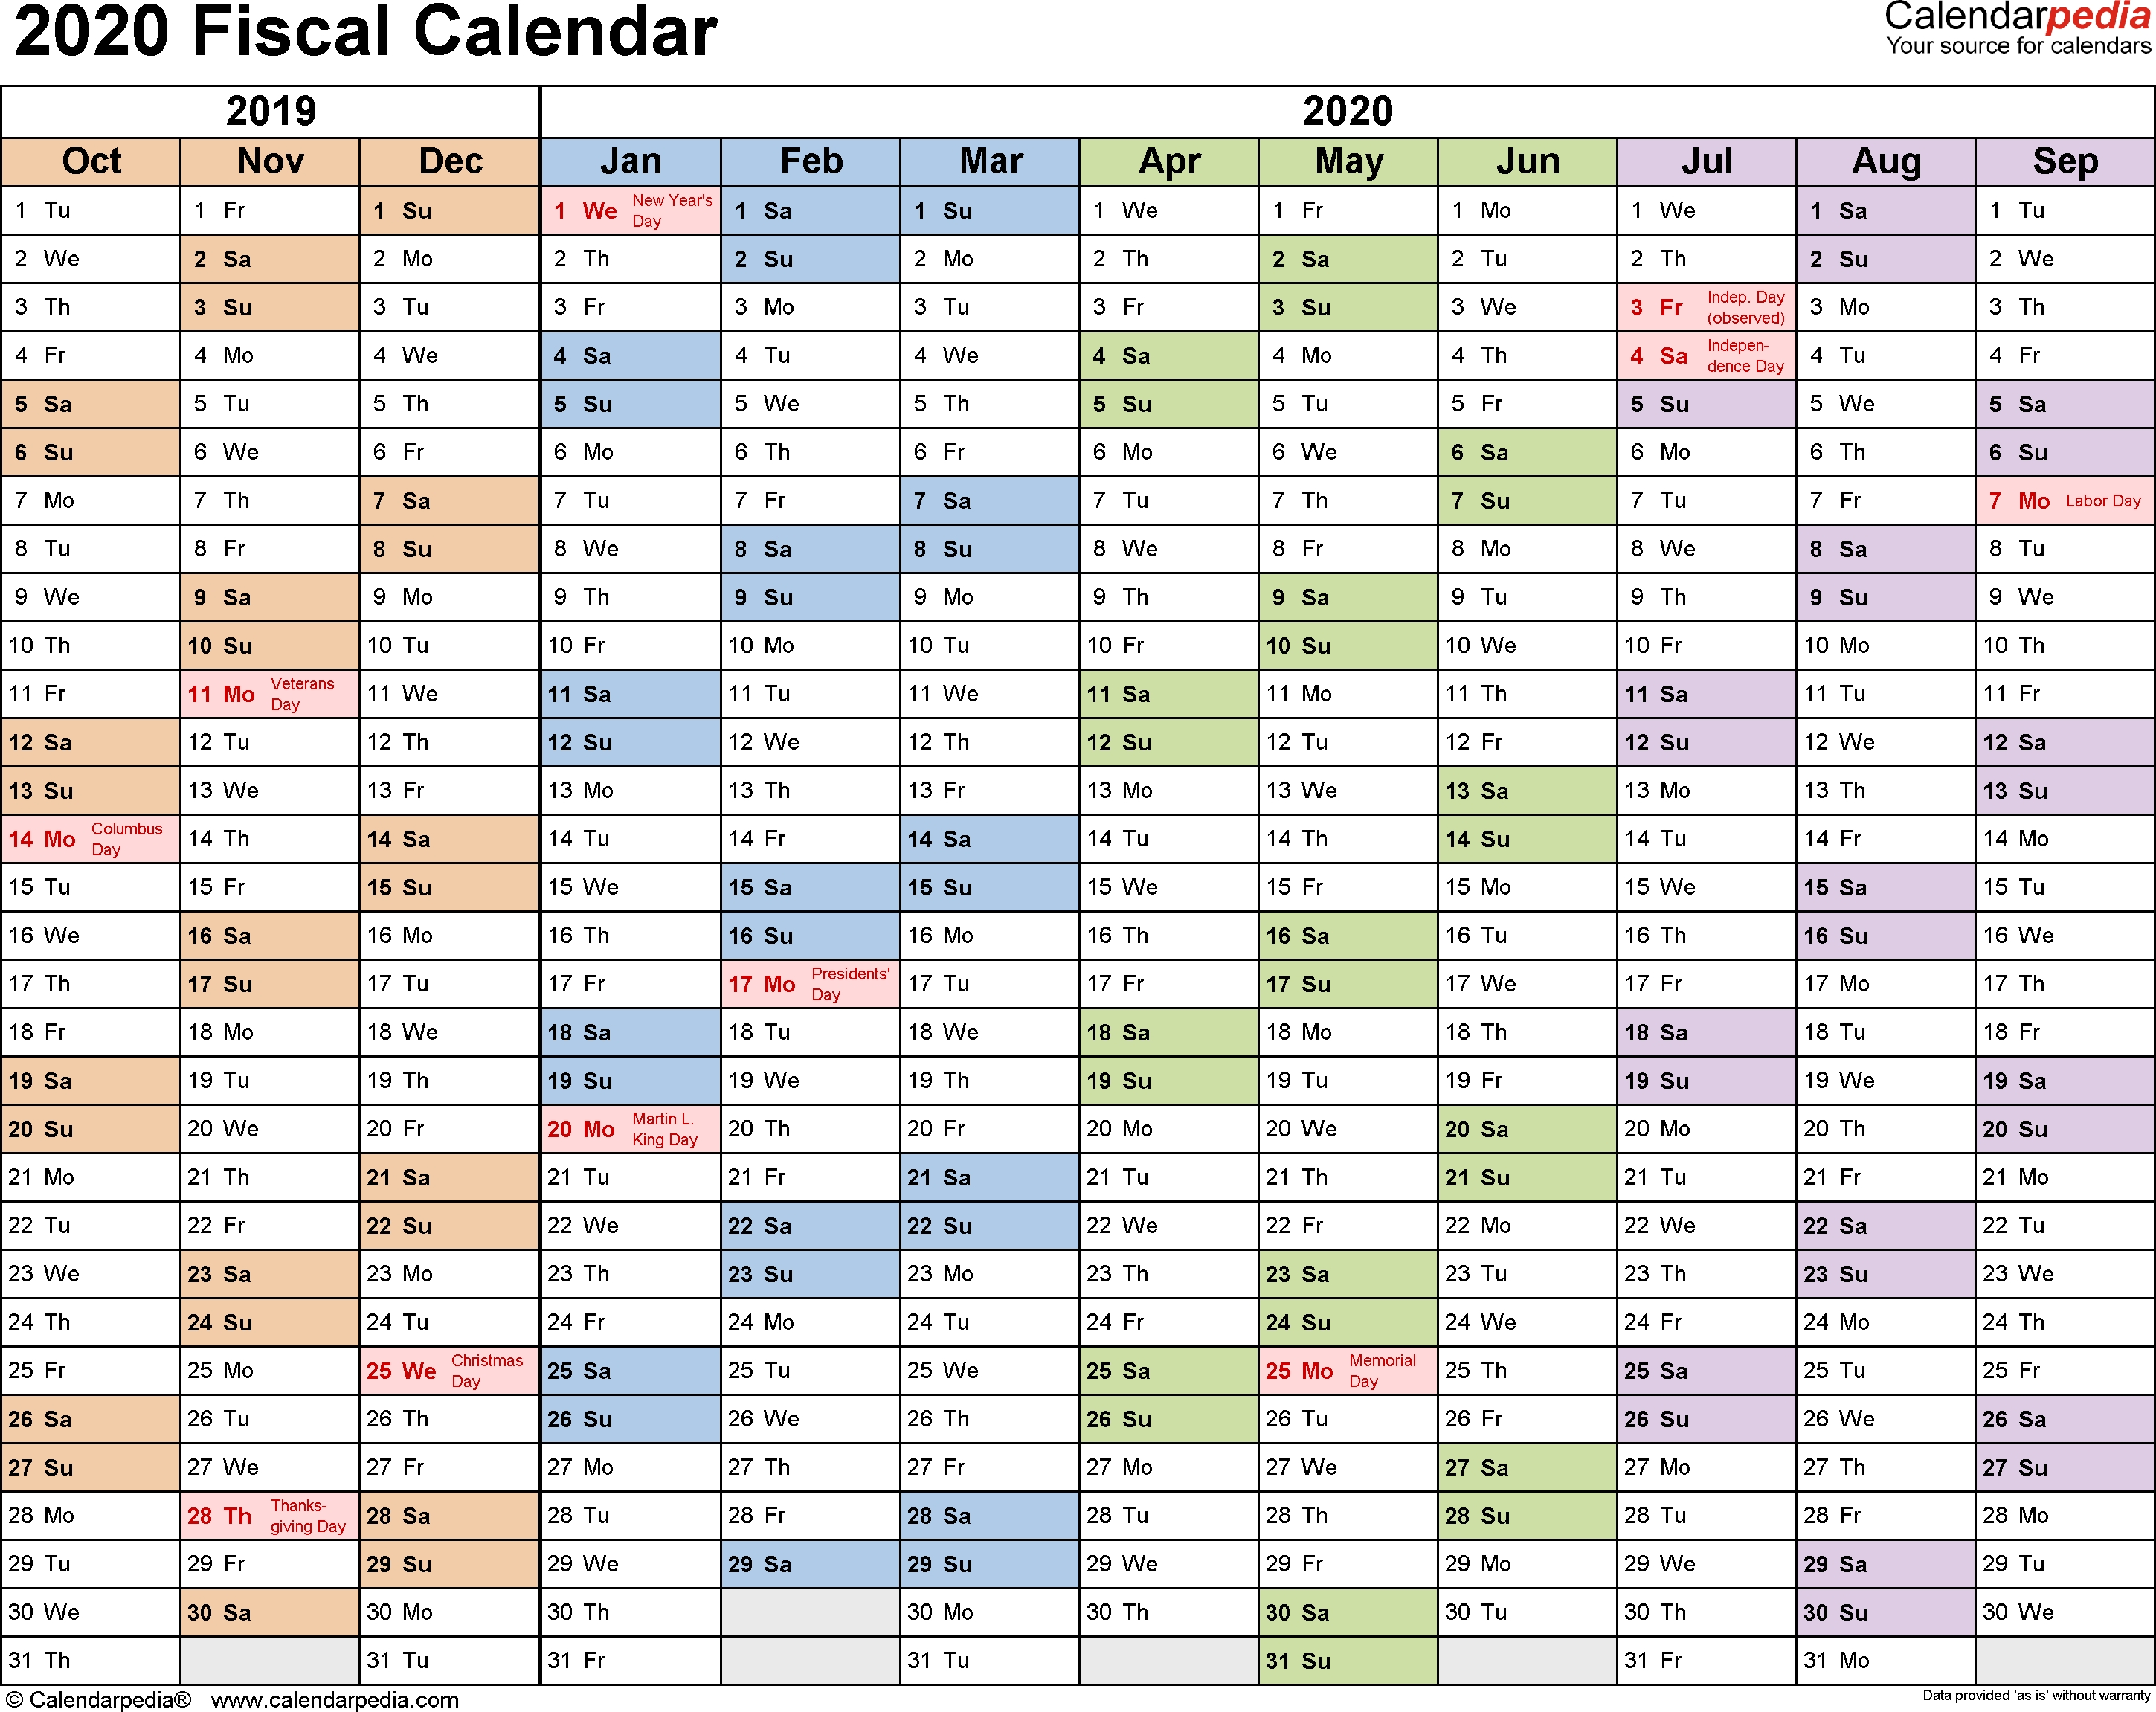 Fiscal Calendars 2020 As Free Printable Excel Templates-2020 Biweekly Pay Calendar Word Template